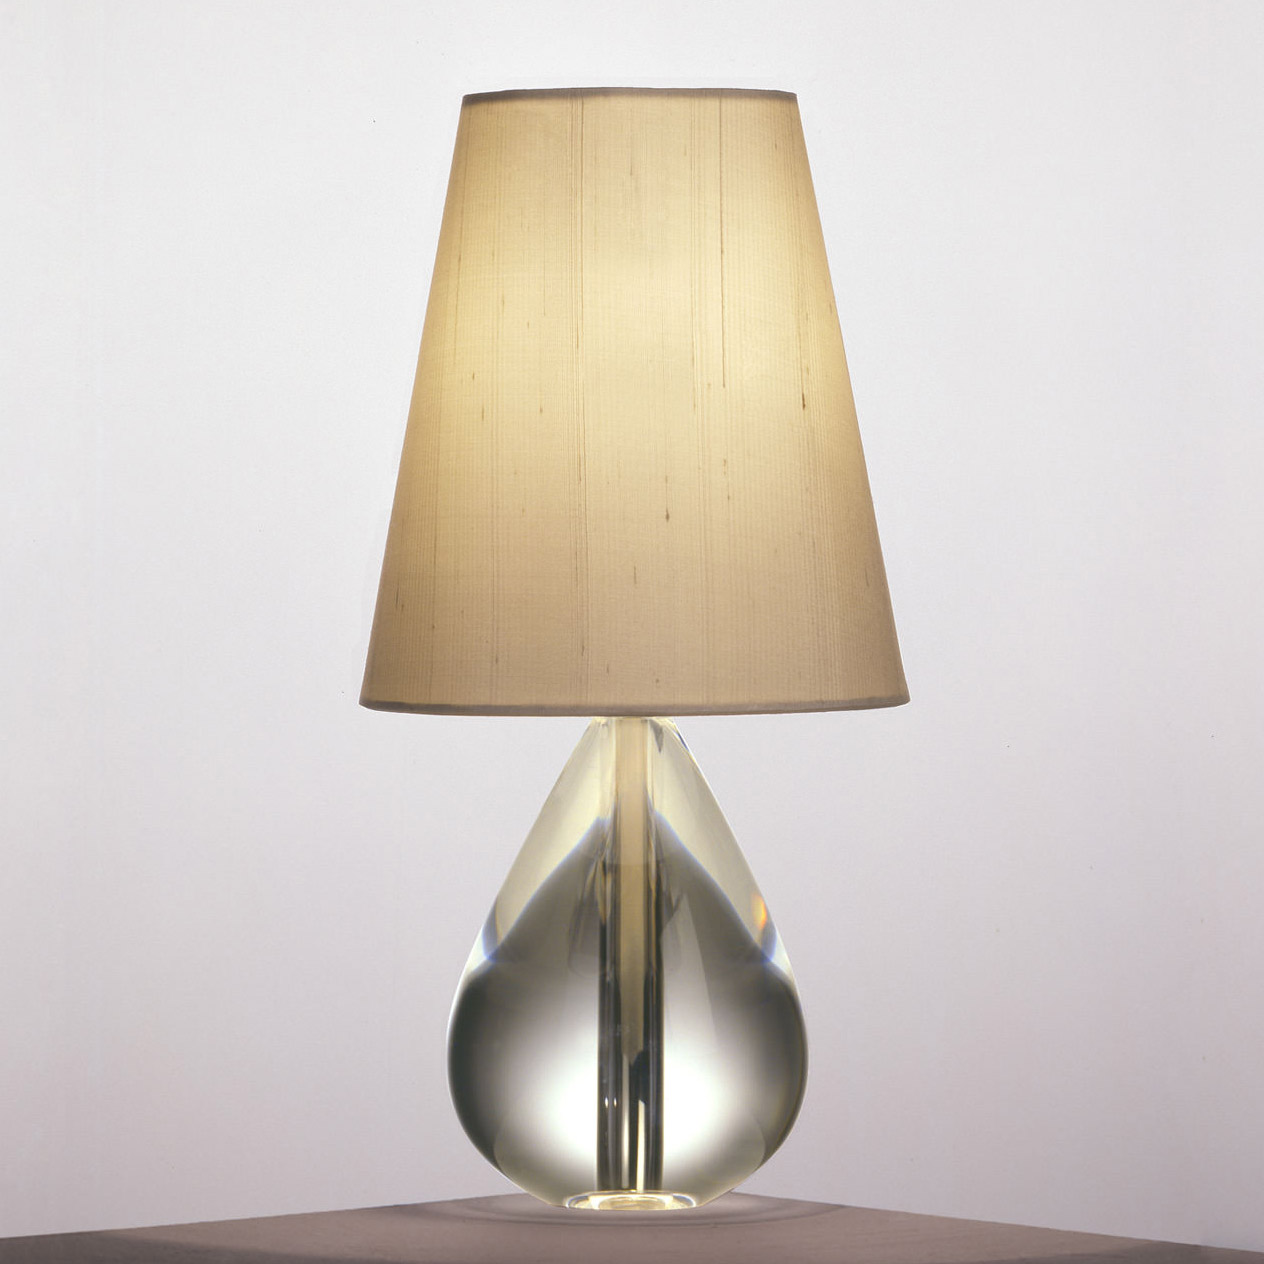 Claridge Tiny Teardrop Accent Lamp By Jonathan Adler | RA 684